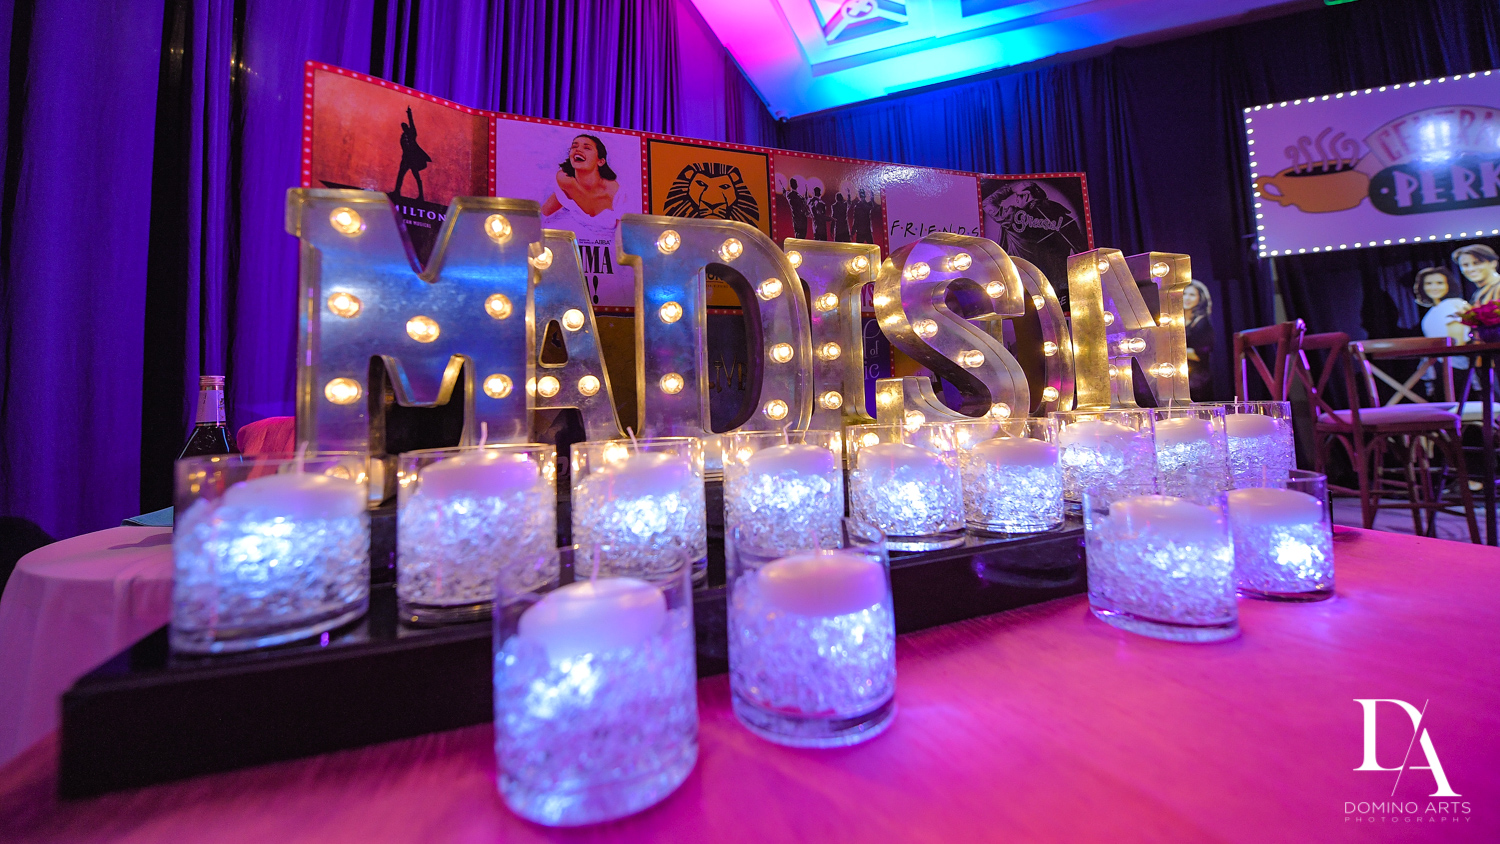 Awesome decor at New York Theme Bat Mitzvah at Woodfield Country Club, Boca Raton by Domino Arts Photography